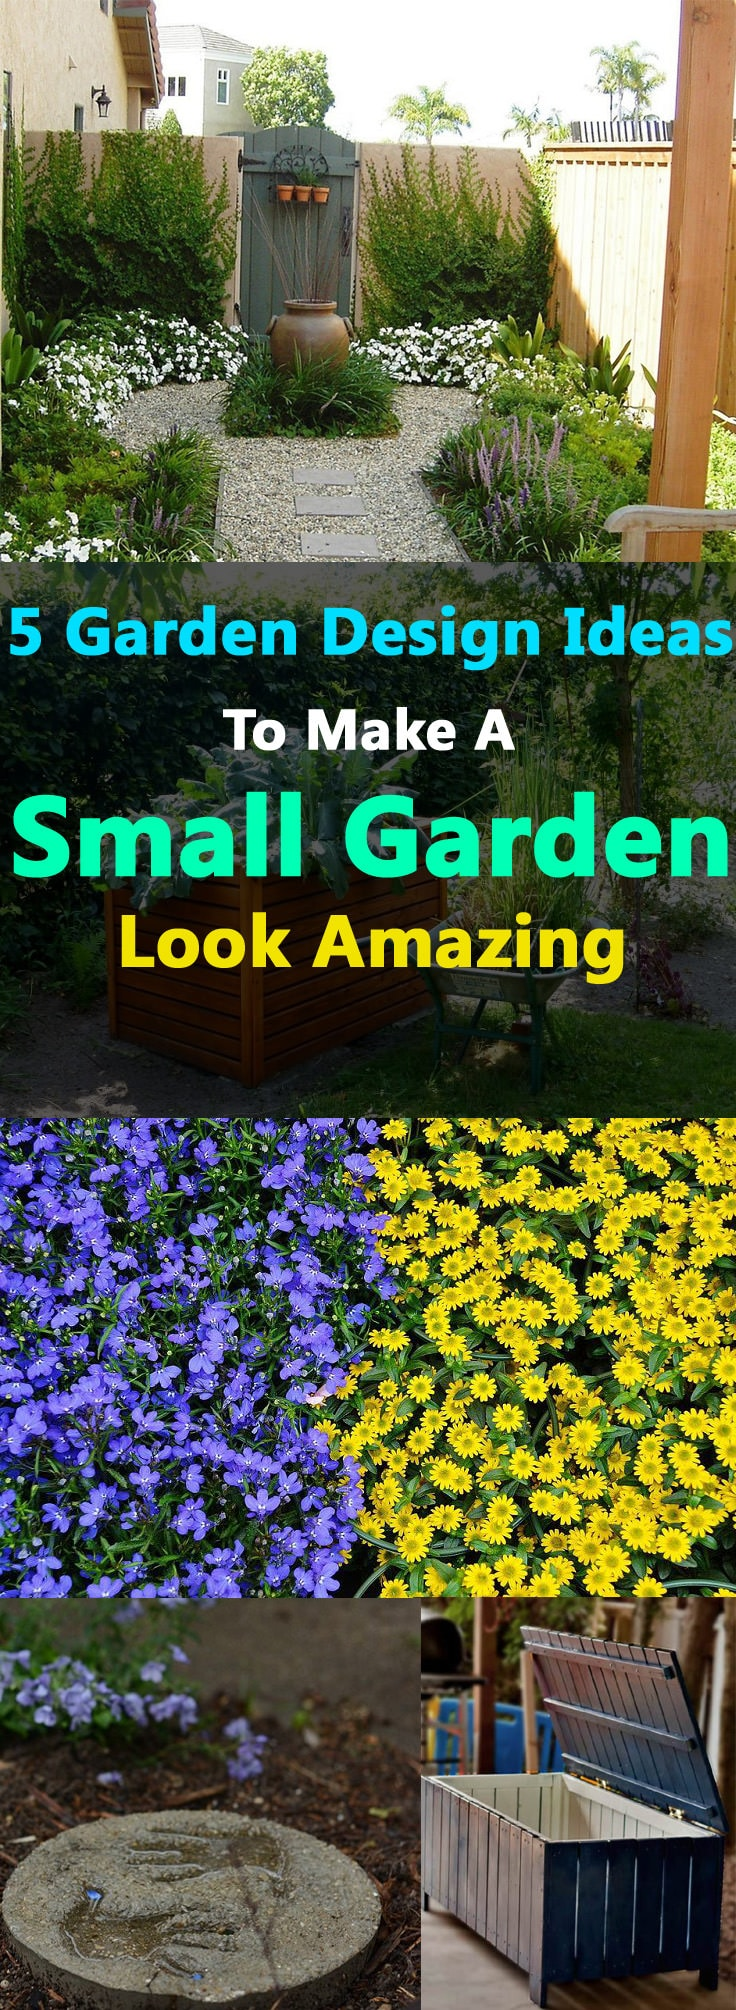 5 garden design ideas to make a small garden look amazing for Garden design ideas 2016